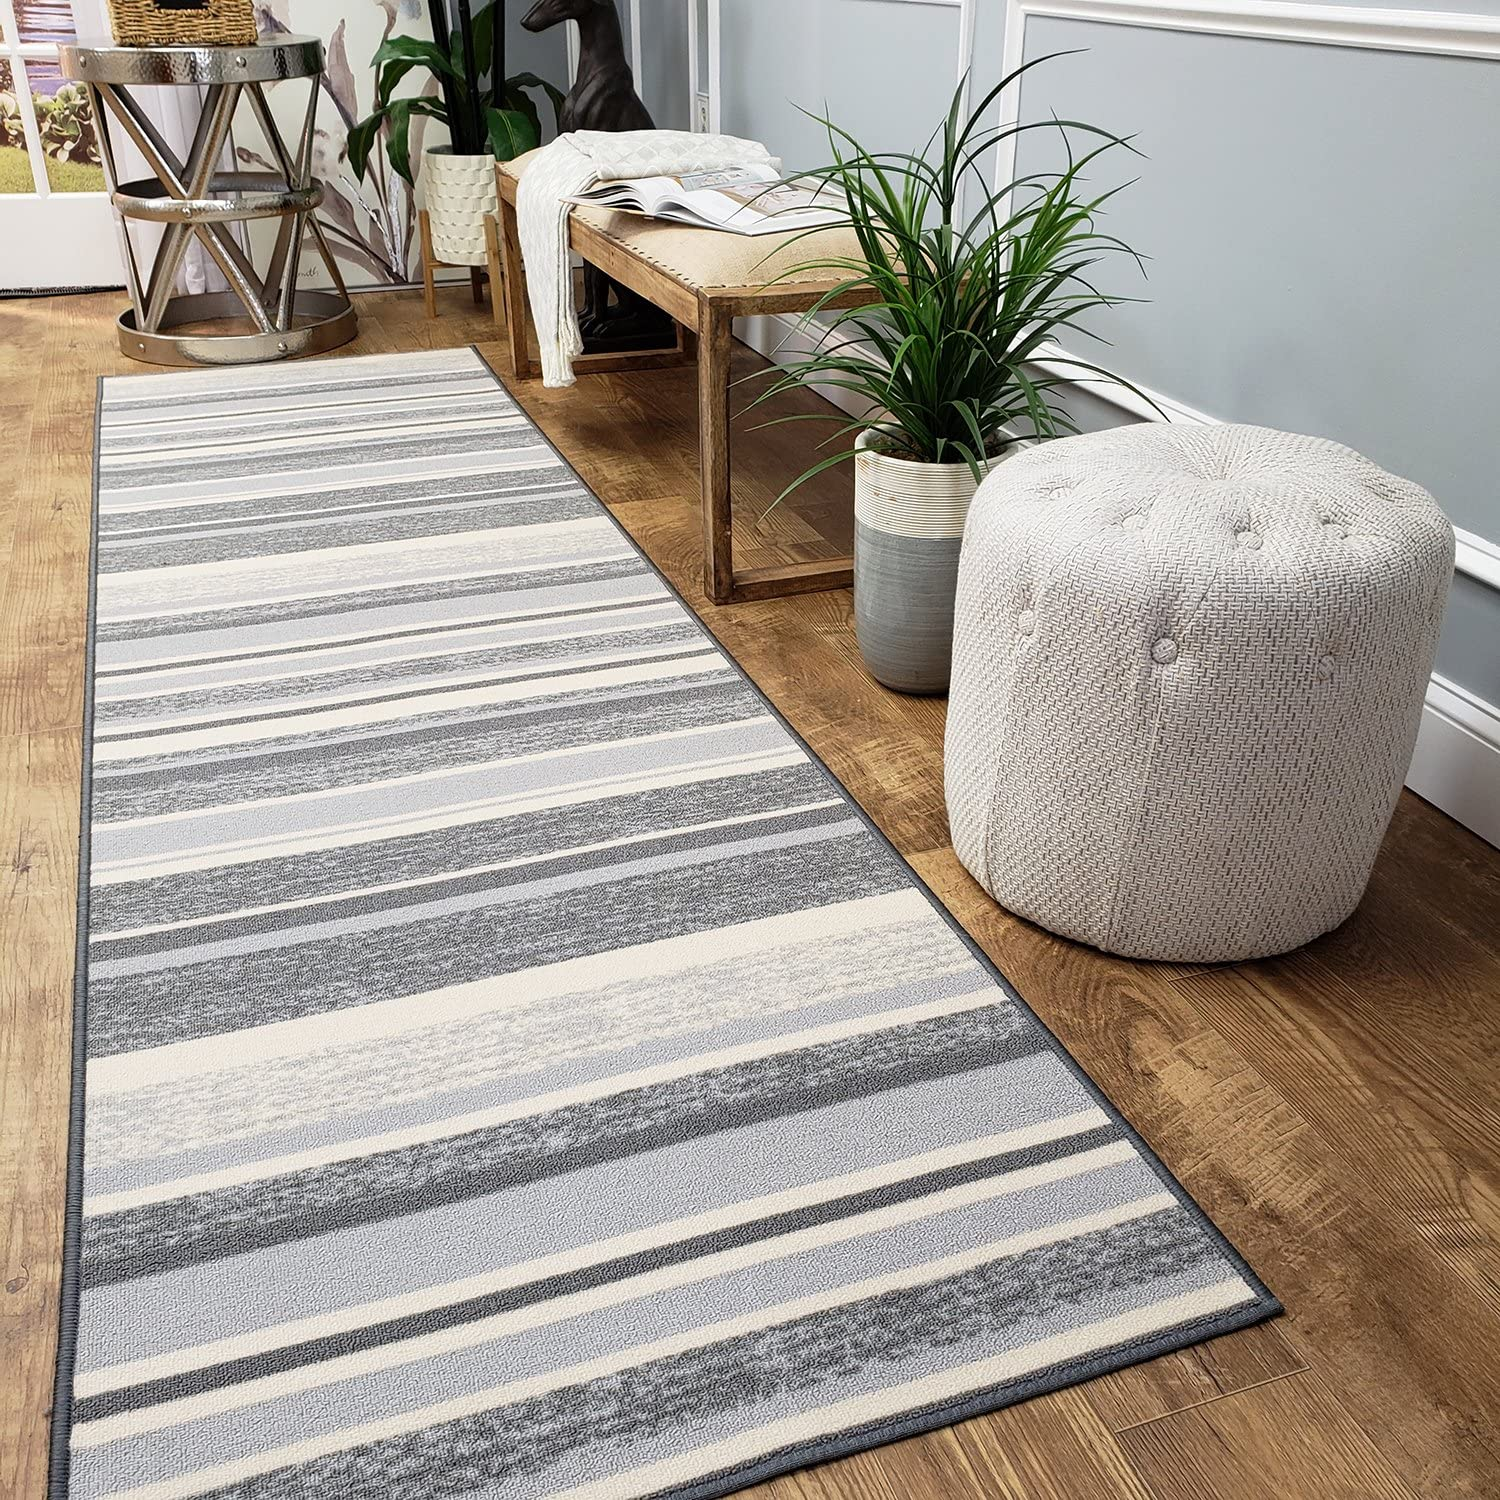 Amazon Com Rubber Backed Runner Rug Runner 22 X 84 Inch 7 Ft Runner Grey Striped Non Slip Kitchen Rugs And Mats Kitchen Dining